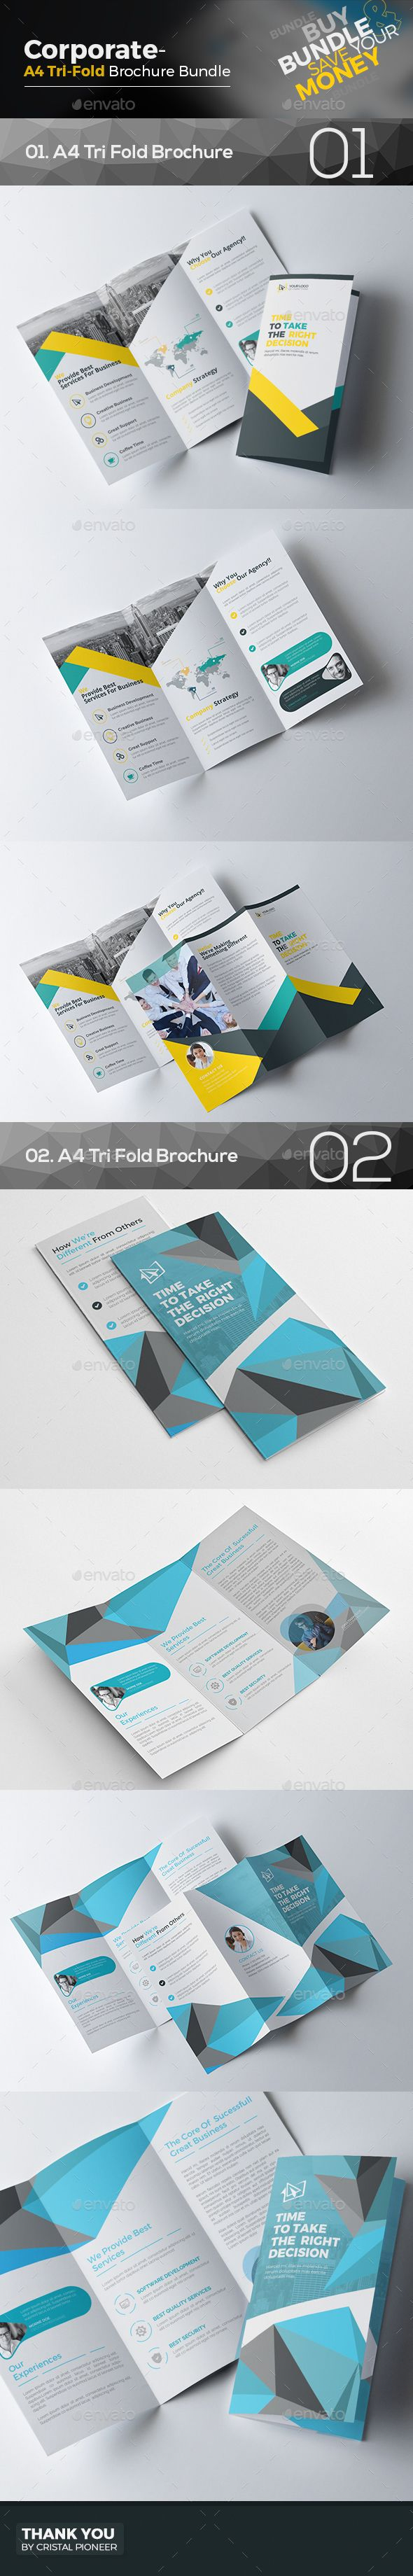 Lovely 1 Button Template Thick 1 Inch Hexagon Template Flat 10 Off Coupon Template 17 Year Old Resume Sample Old 2 Page Resume Examples Yellow2 Page Resume Format 25  Best Ideas About Tri Fold Brochure Template On Pinterest | Tri ..